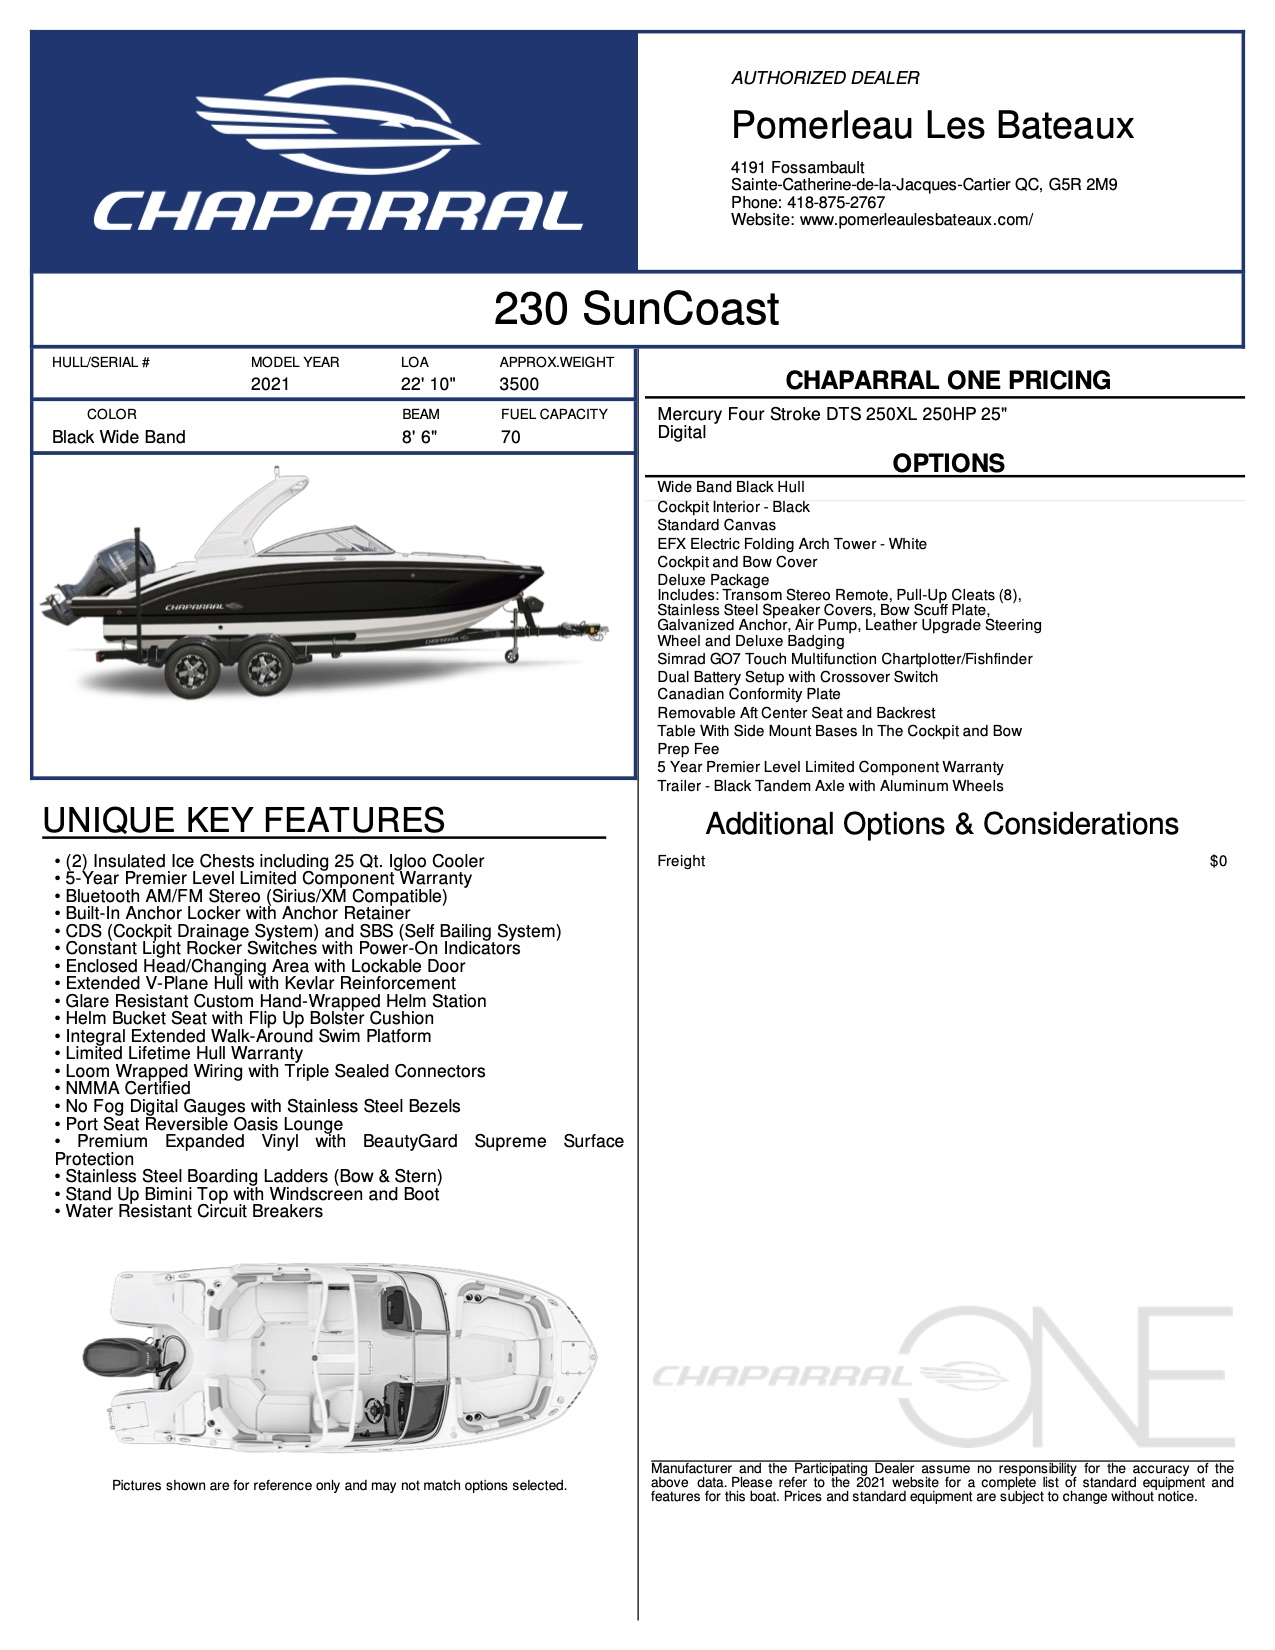 Chaparral 230 suncoast - Chaparral-Boats-2021-230--Window-Sticker-304236